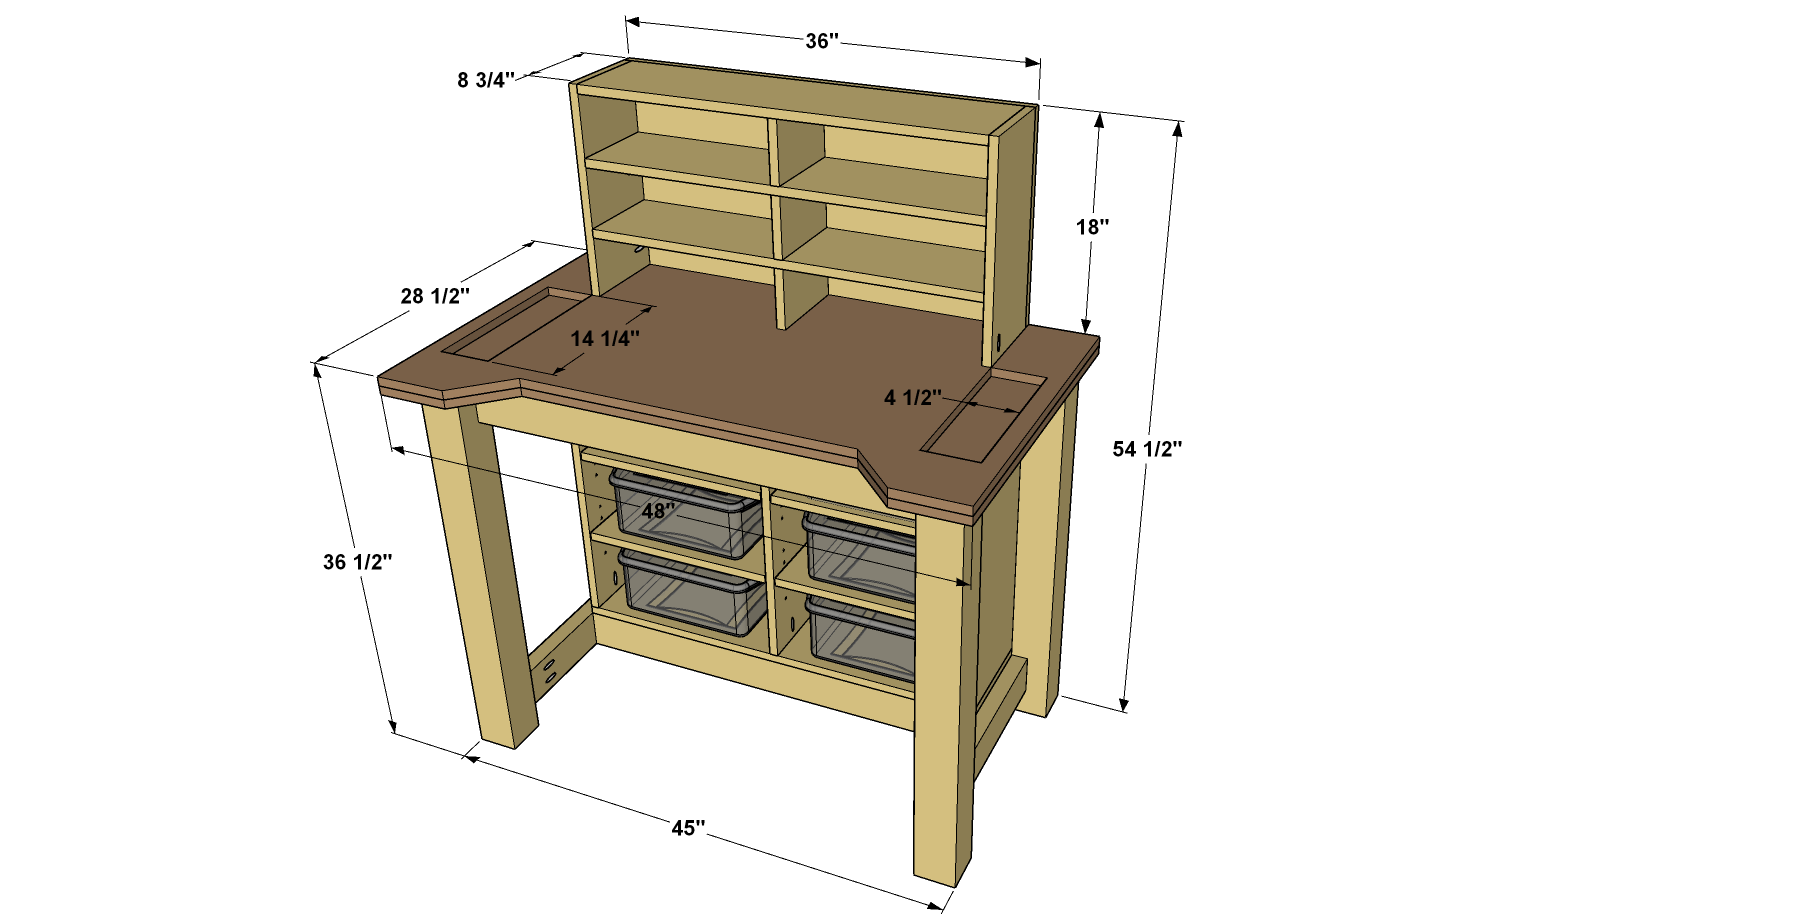 hobby-bench-overall-with-dimensions